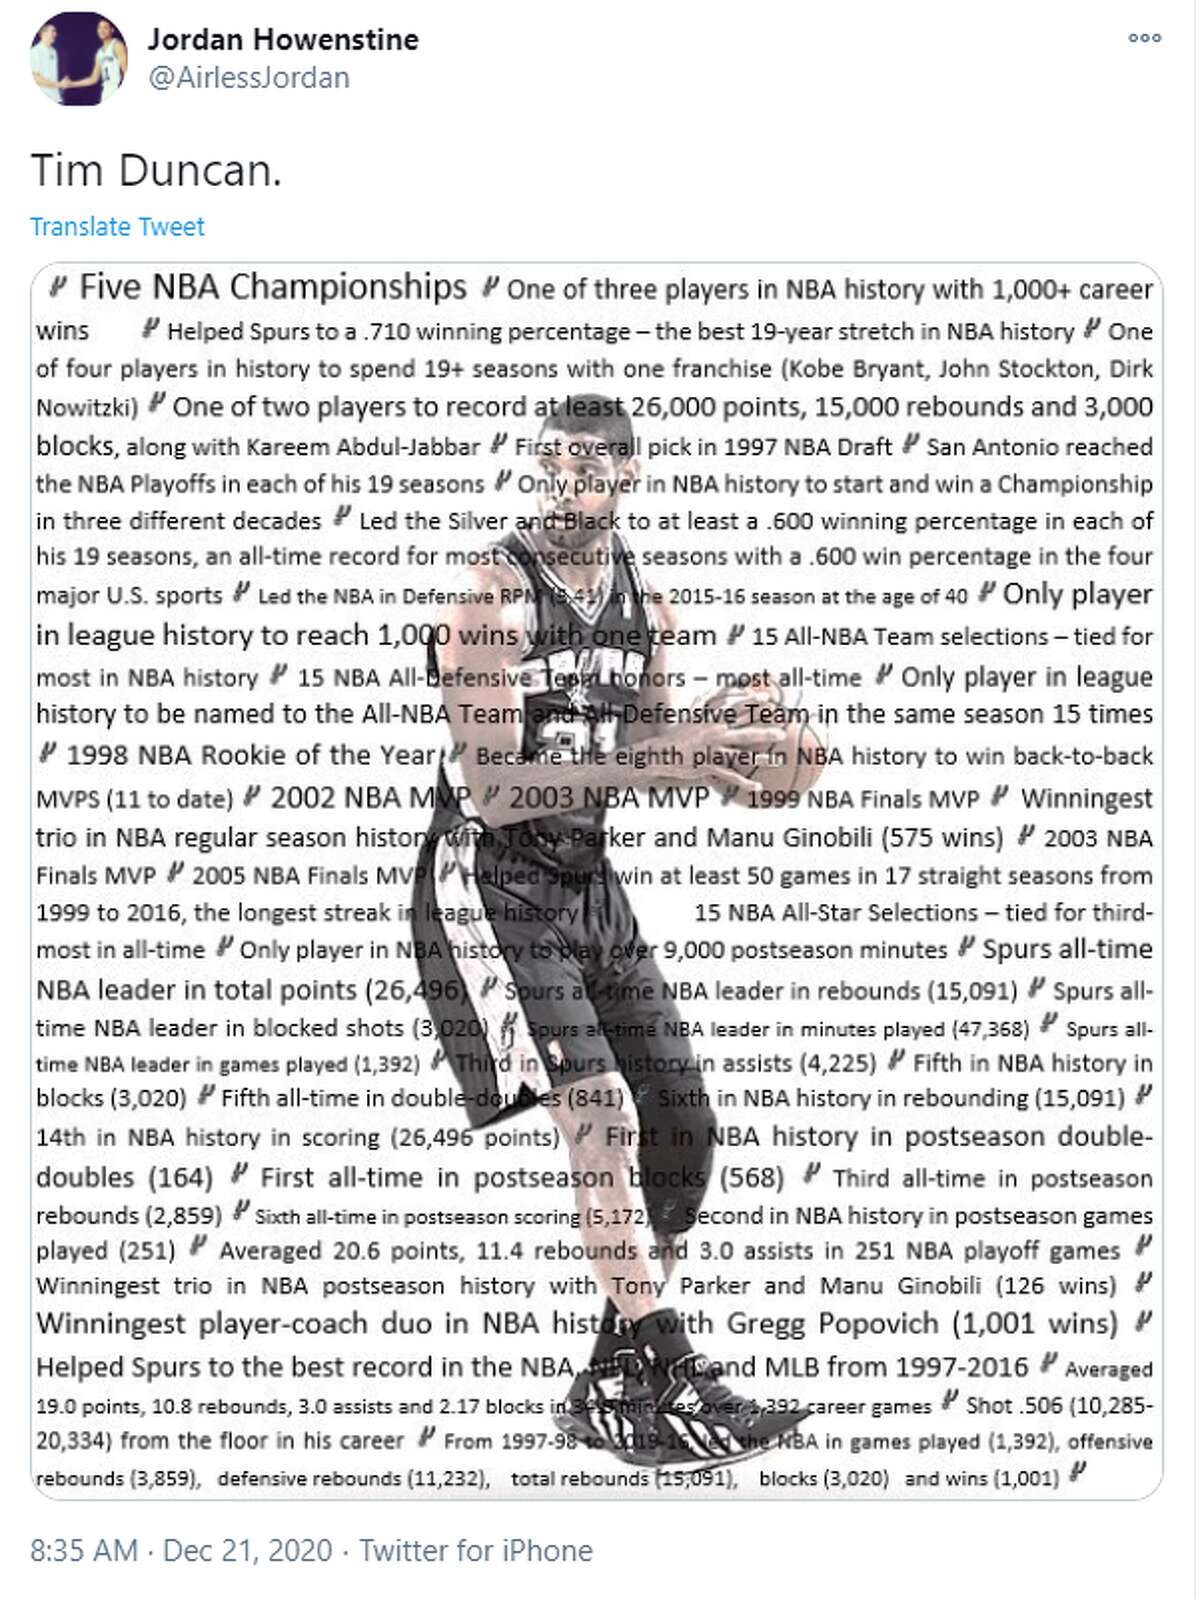 This graphic tells you all you need to know about Duncan's career highlights if you need to arm yourself with facts before jumping into the Duncan vs. Davis debate.